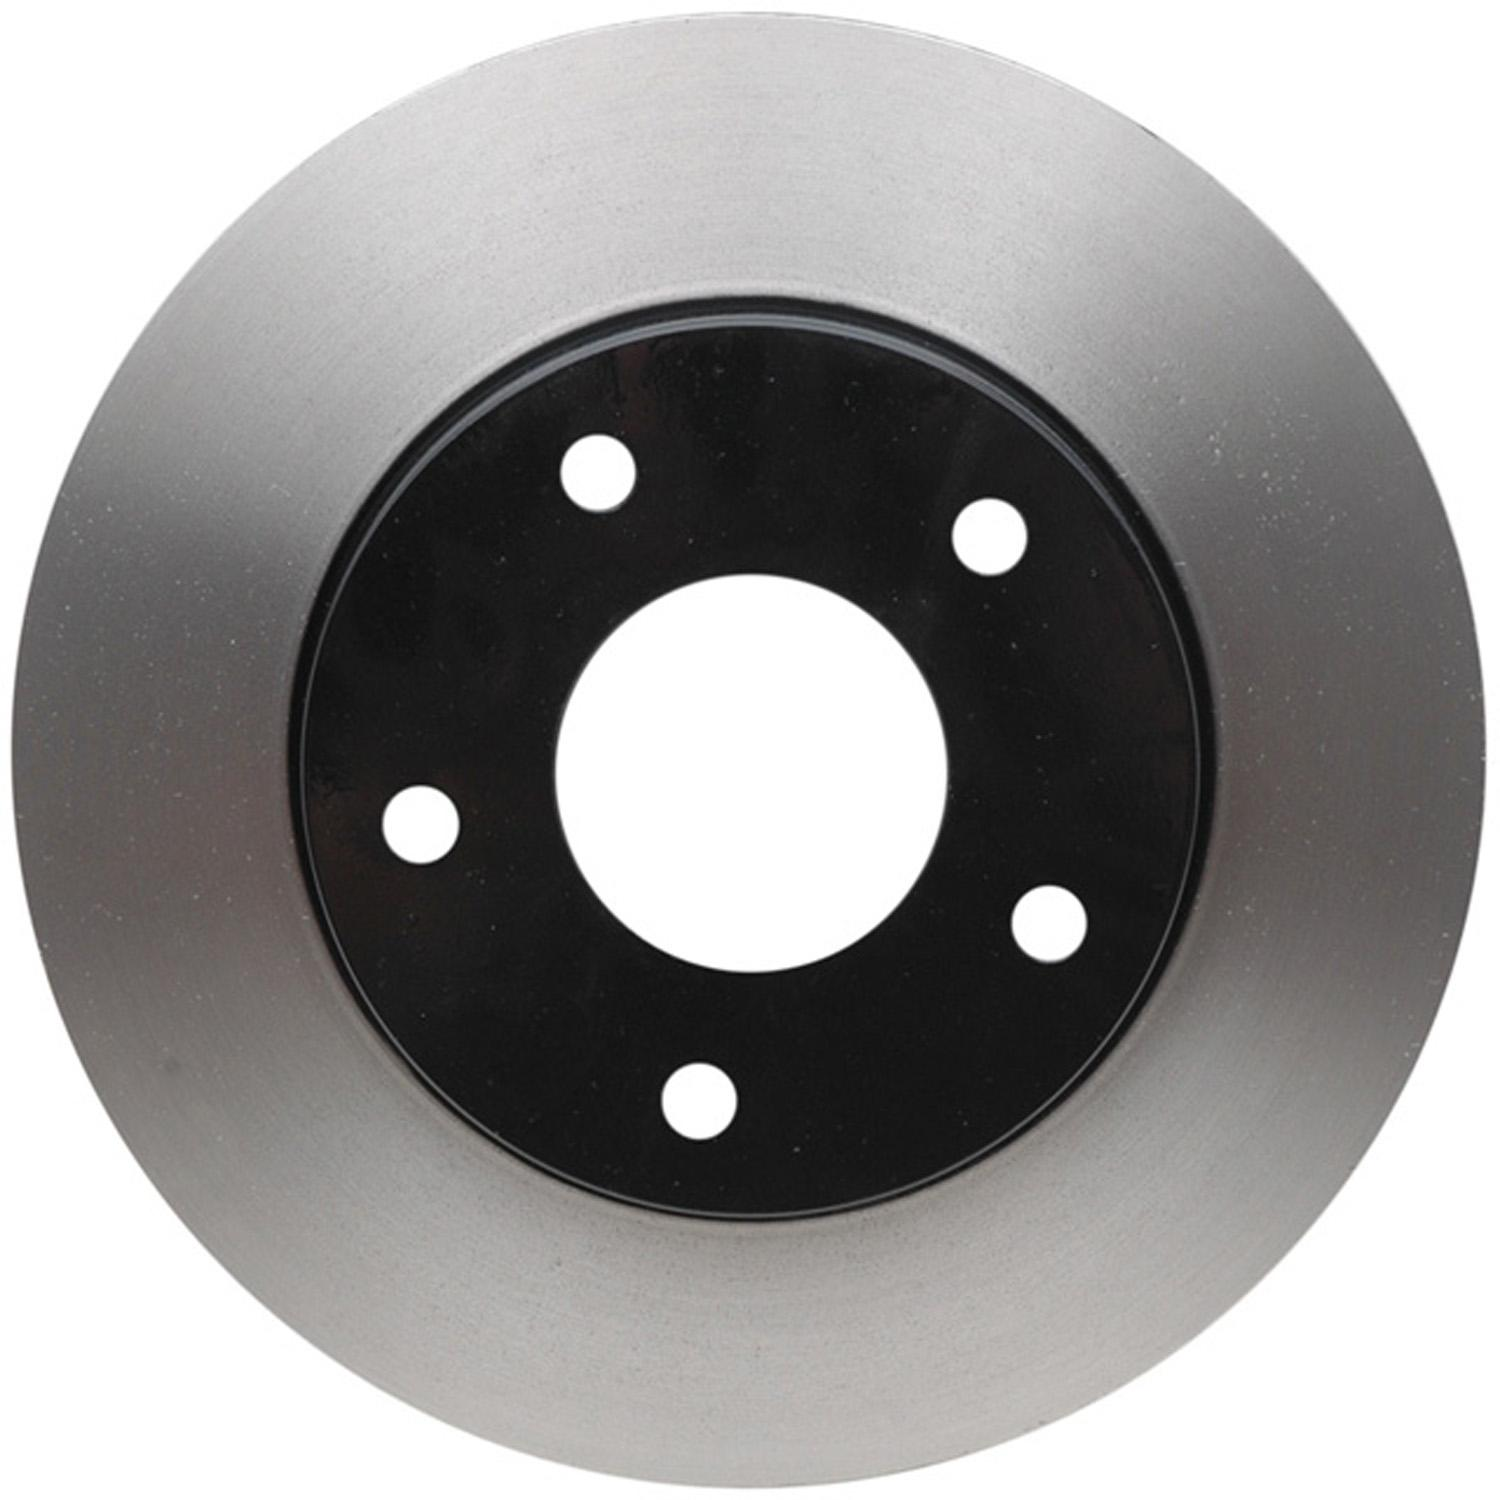 ACDELCO PROFESSIONAL BRAKES - Disc Brake Rotor (Front) - ADU 18A862